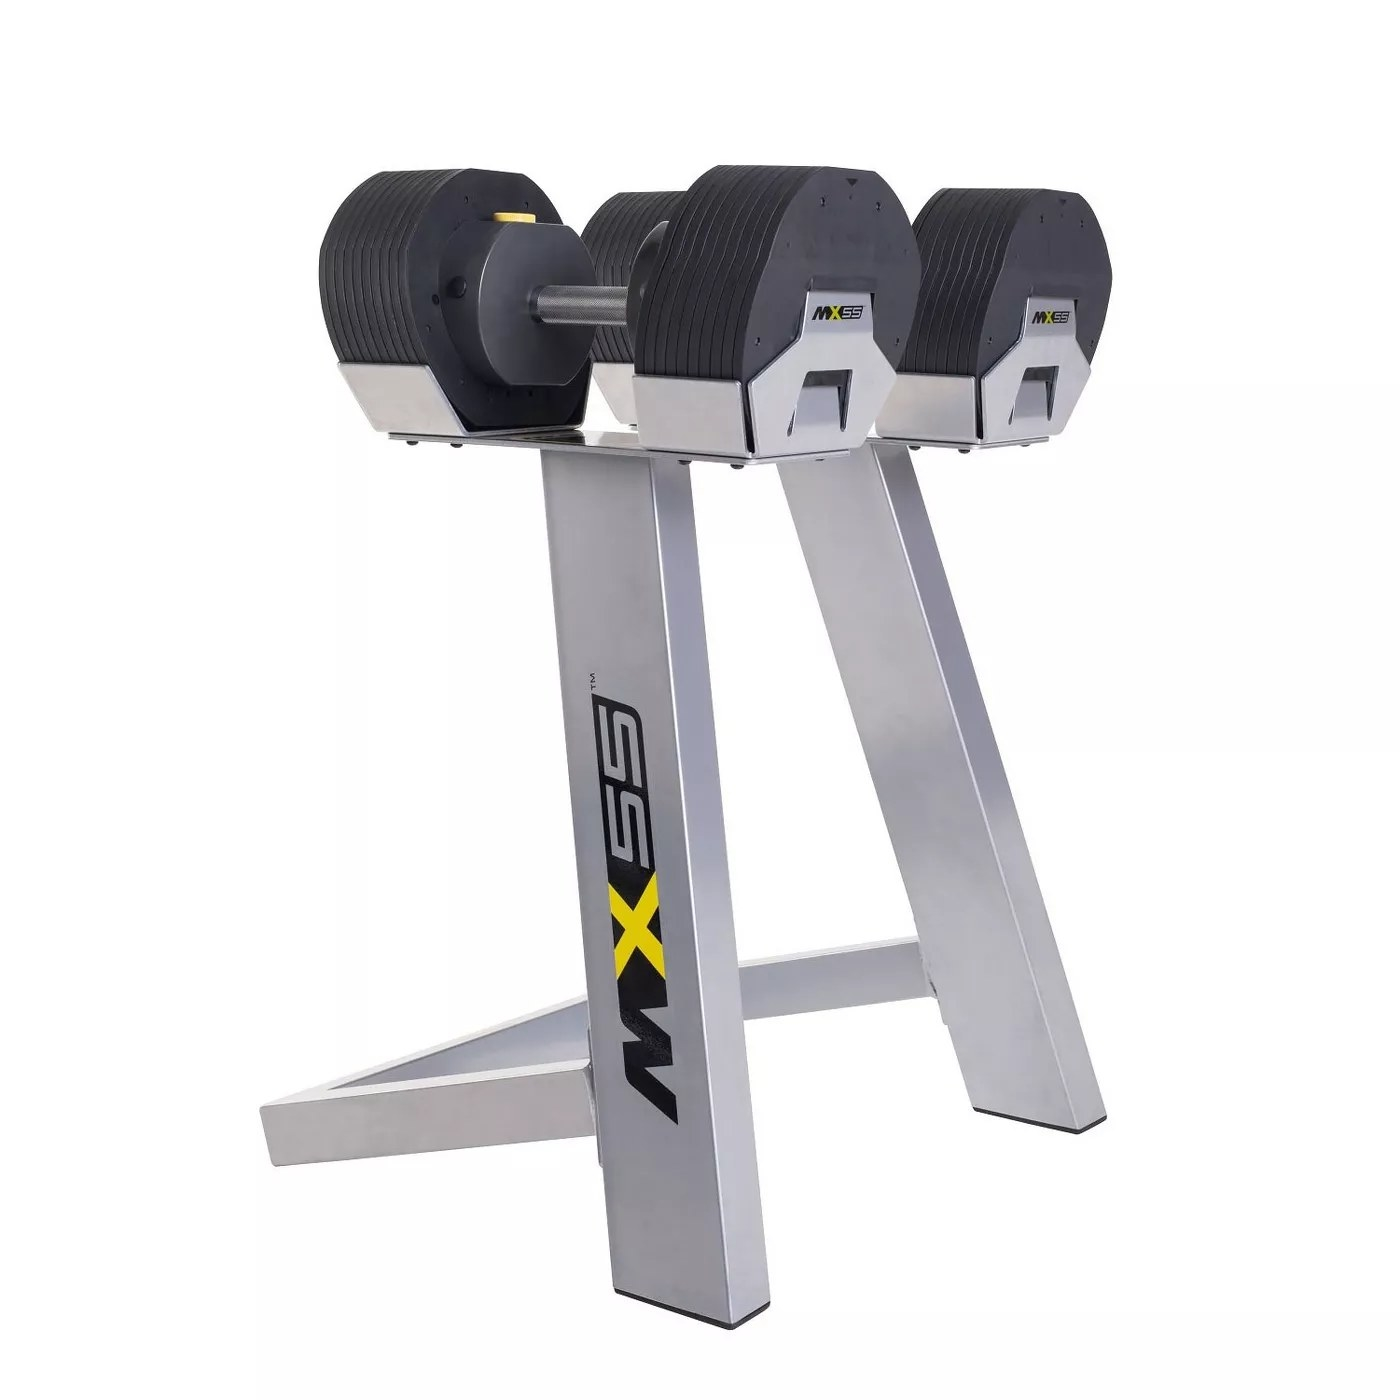 The MX-55 dumbbell set and stand